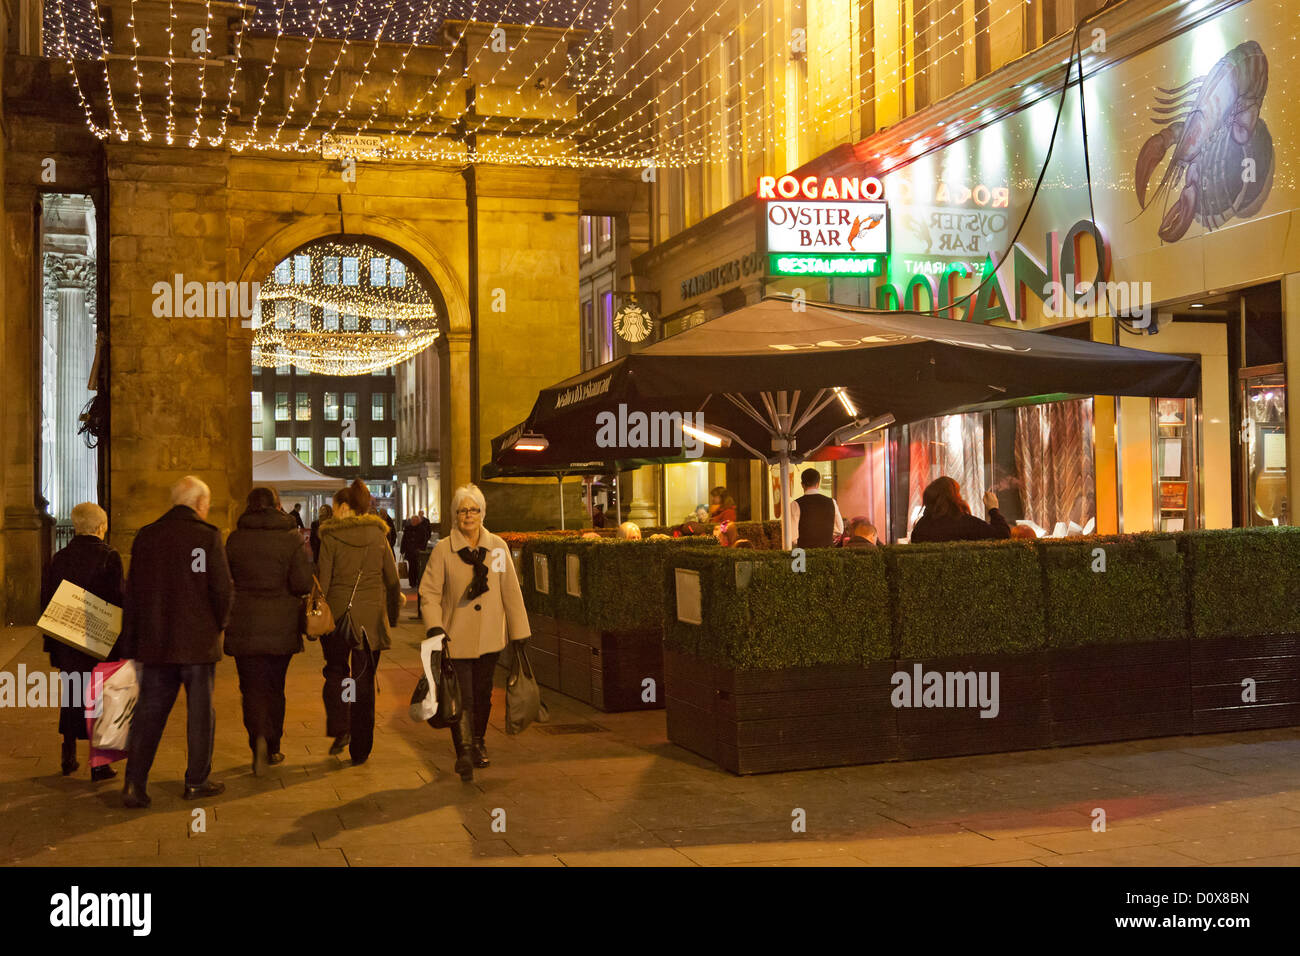 Exchange Place, Glasgow. Pedestrians and diners outside the famous Rogano fish and seafood restaurant and oyster - Stock Image